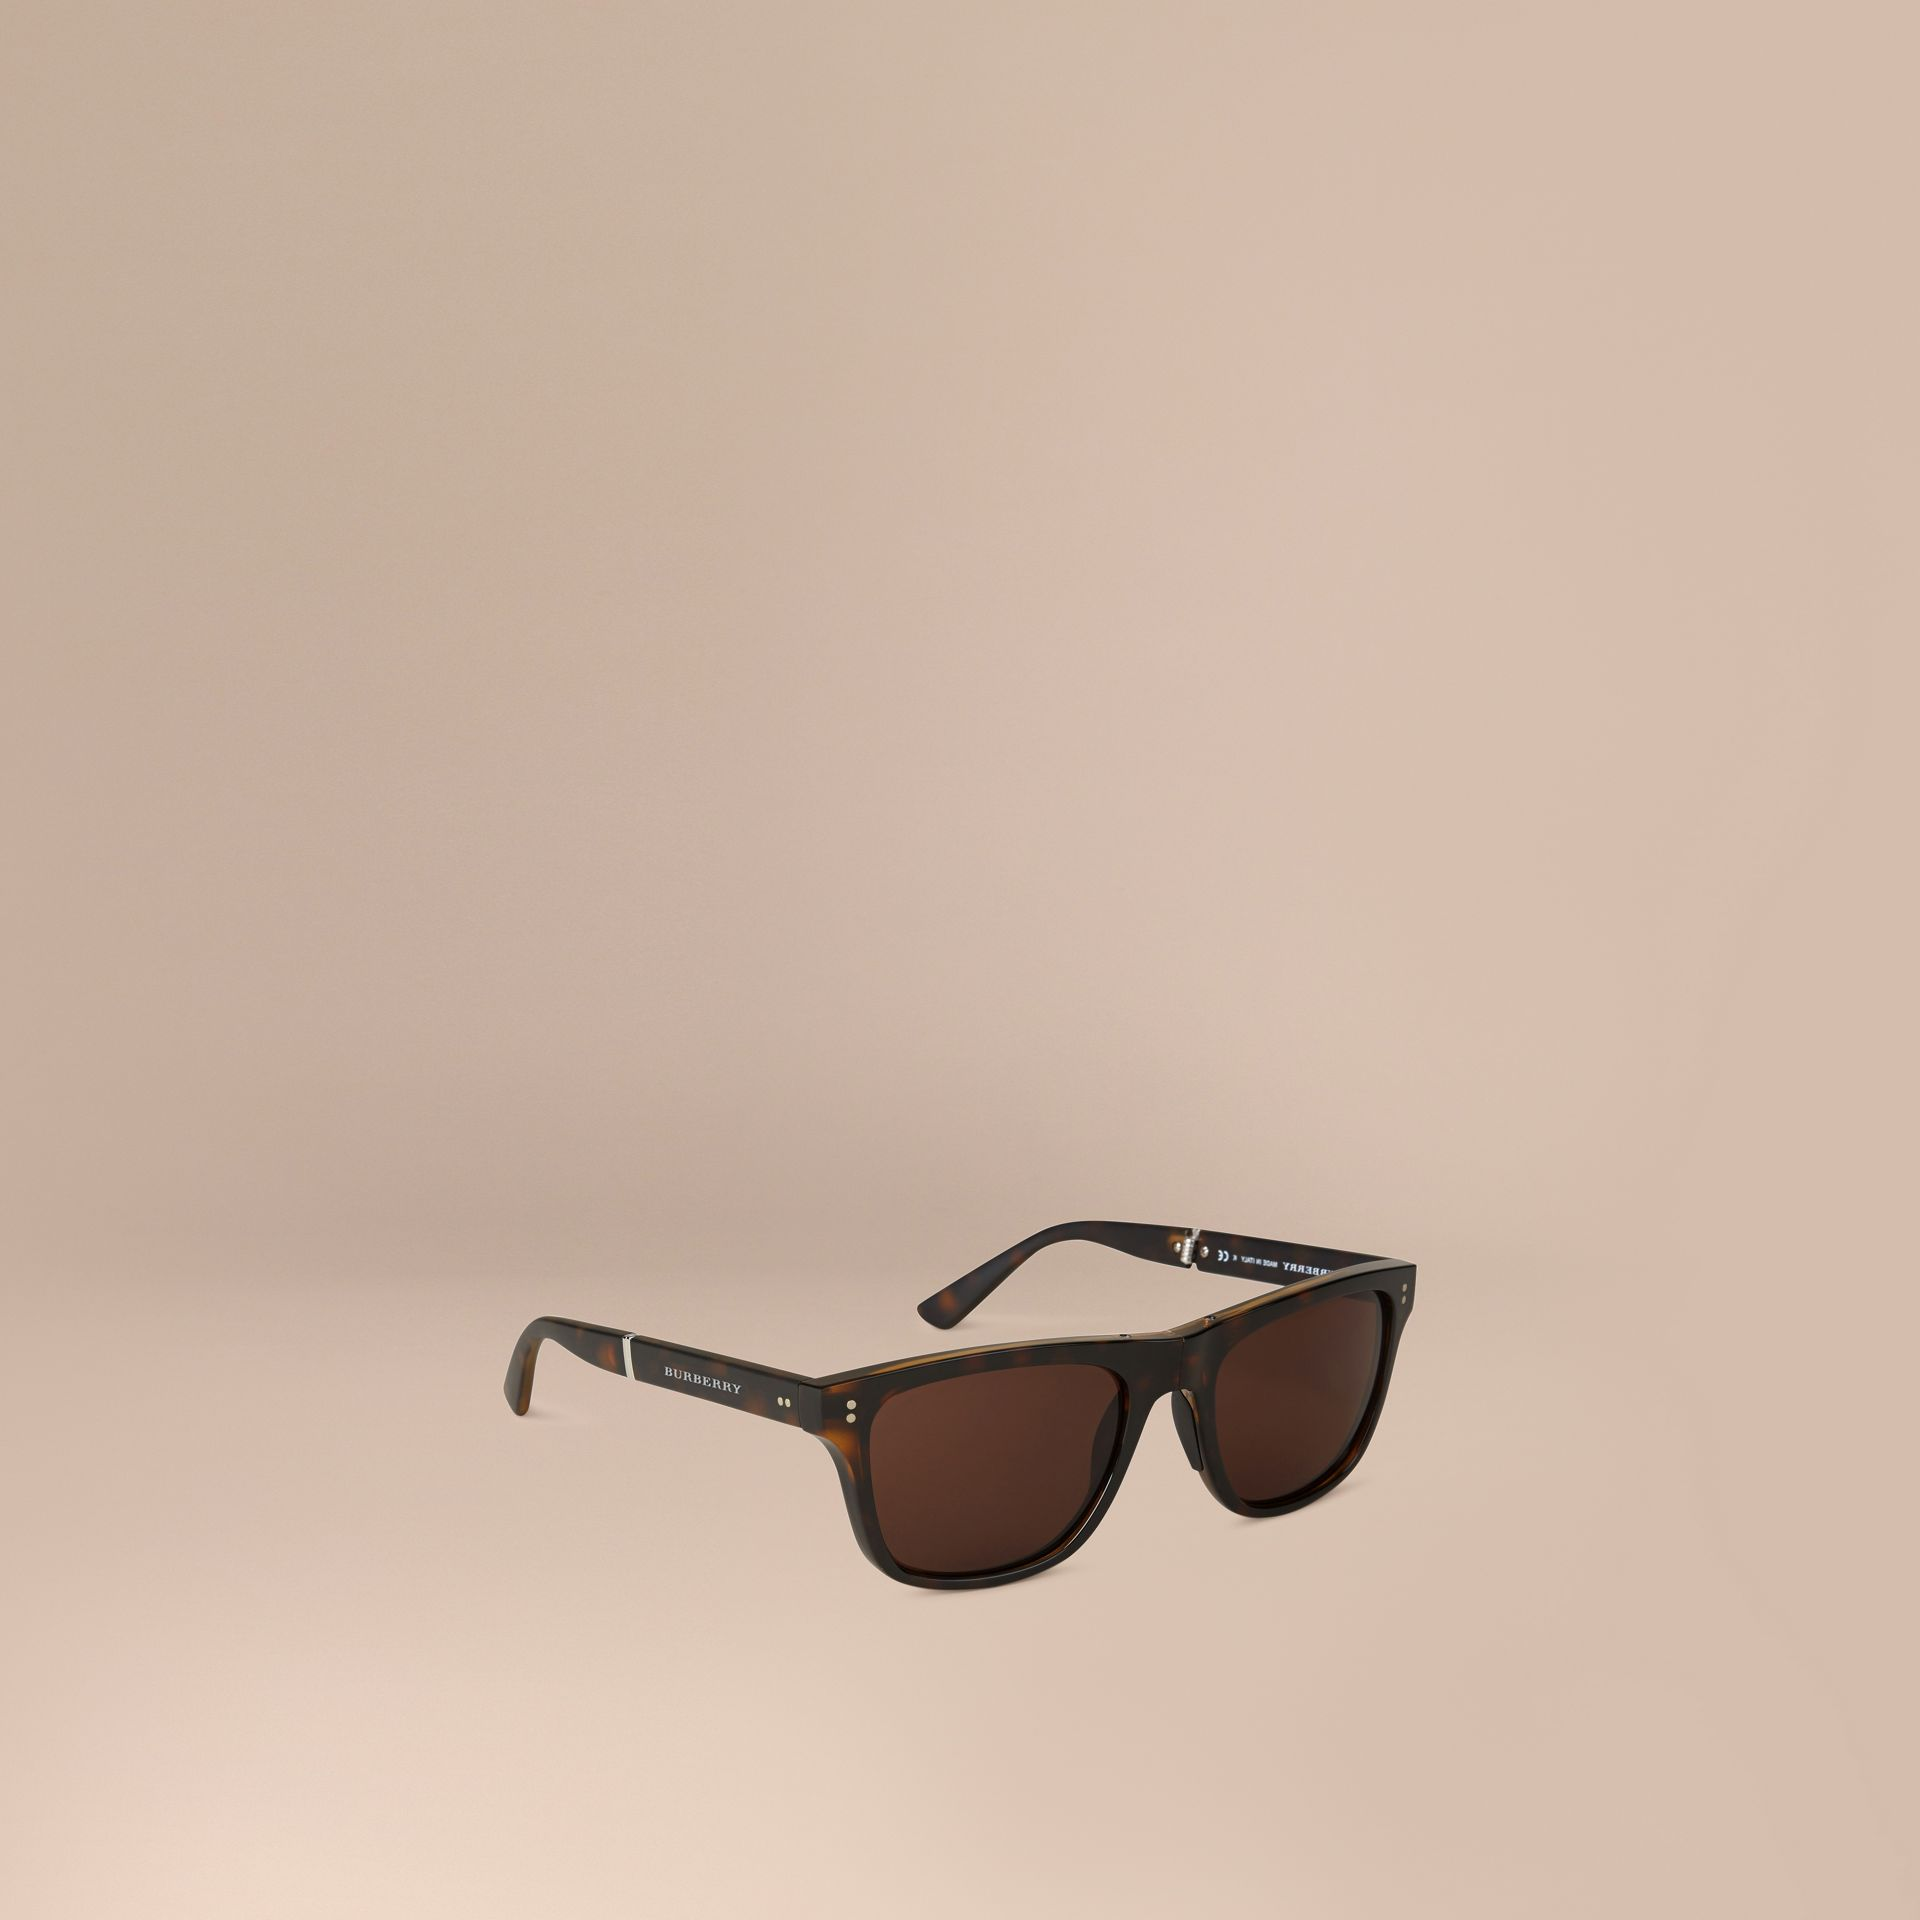 Folding Rectangular Frame Sunglasses in Dark Brown - Men | Burberry - gallery image 1